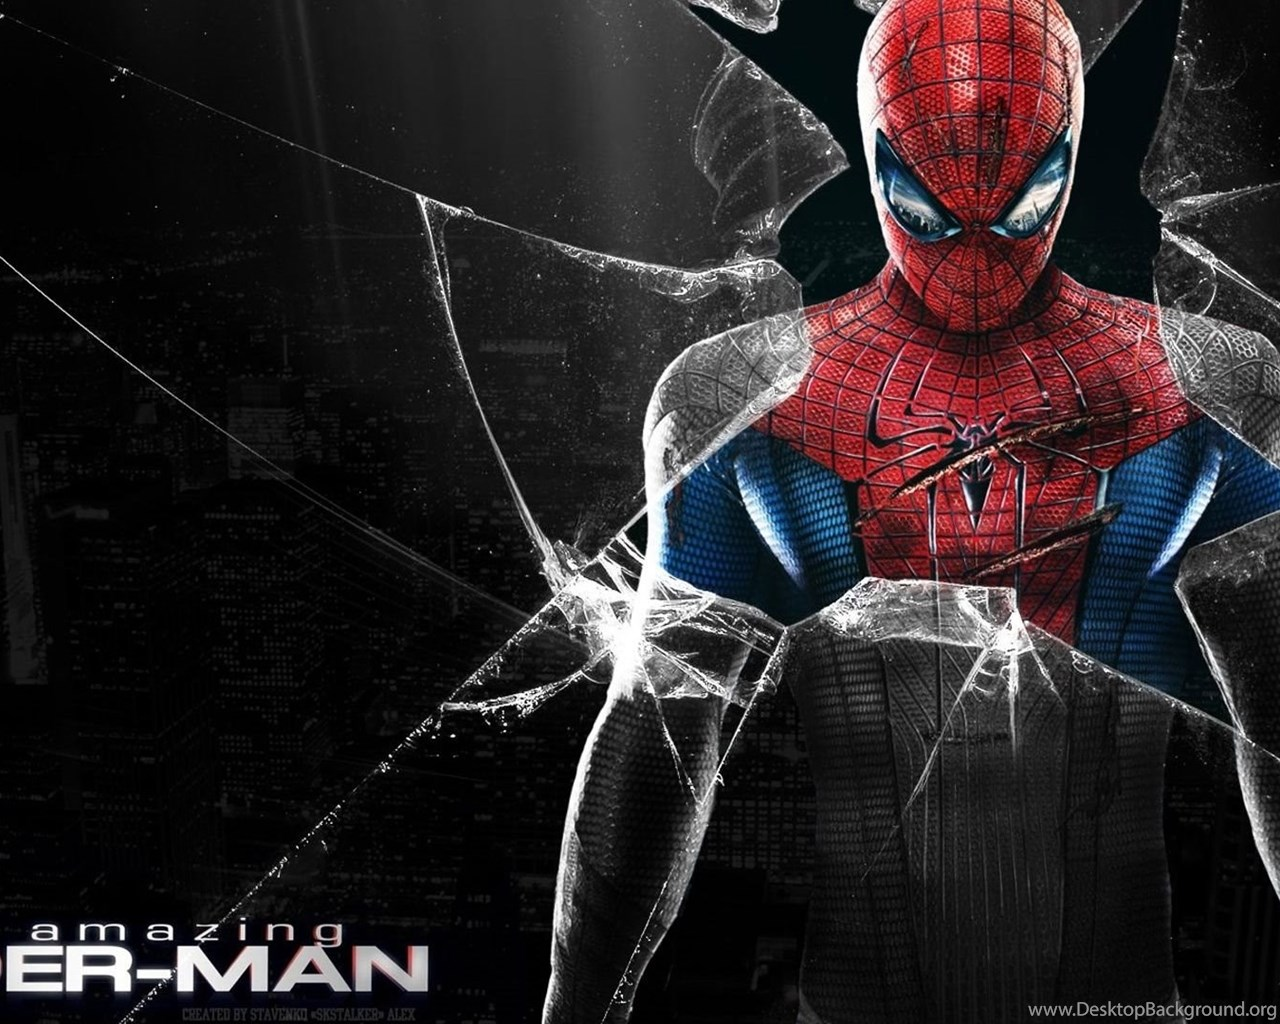 The amazing spider man 2 wallpaper hd 1080p download 2014 - Spider hd images download ...